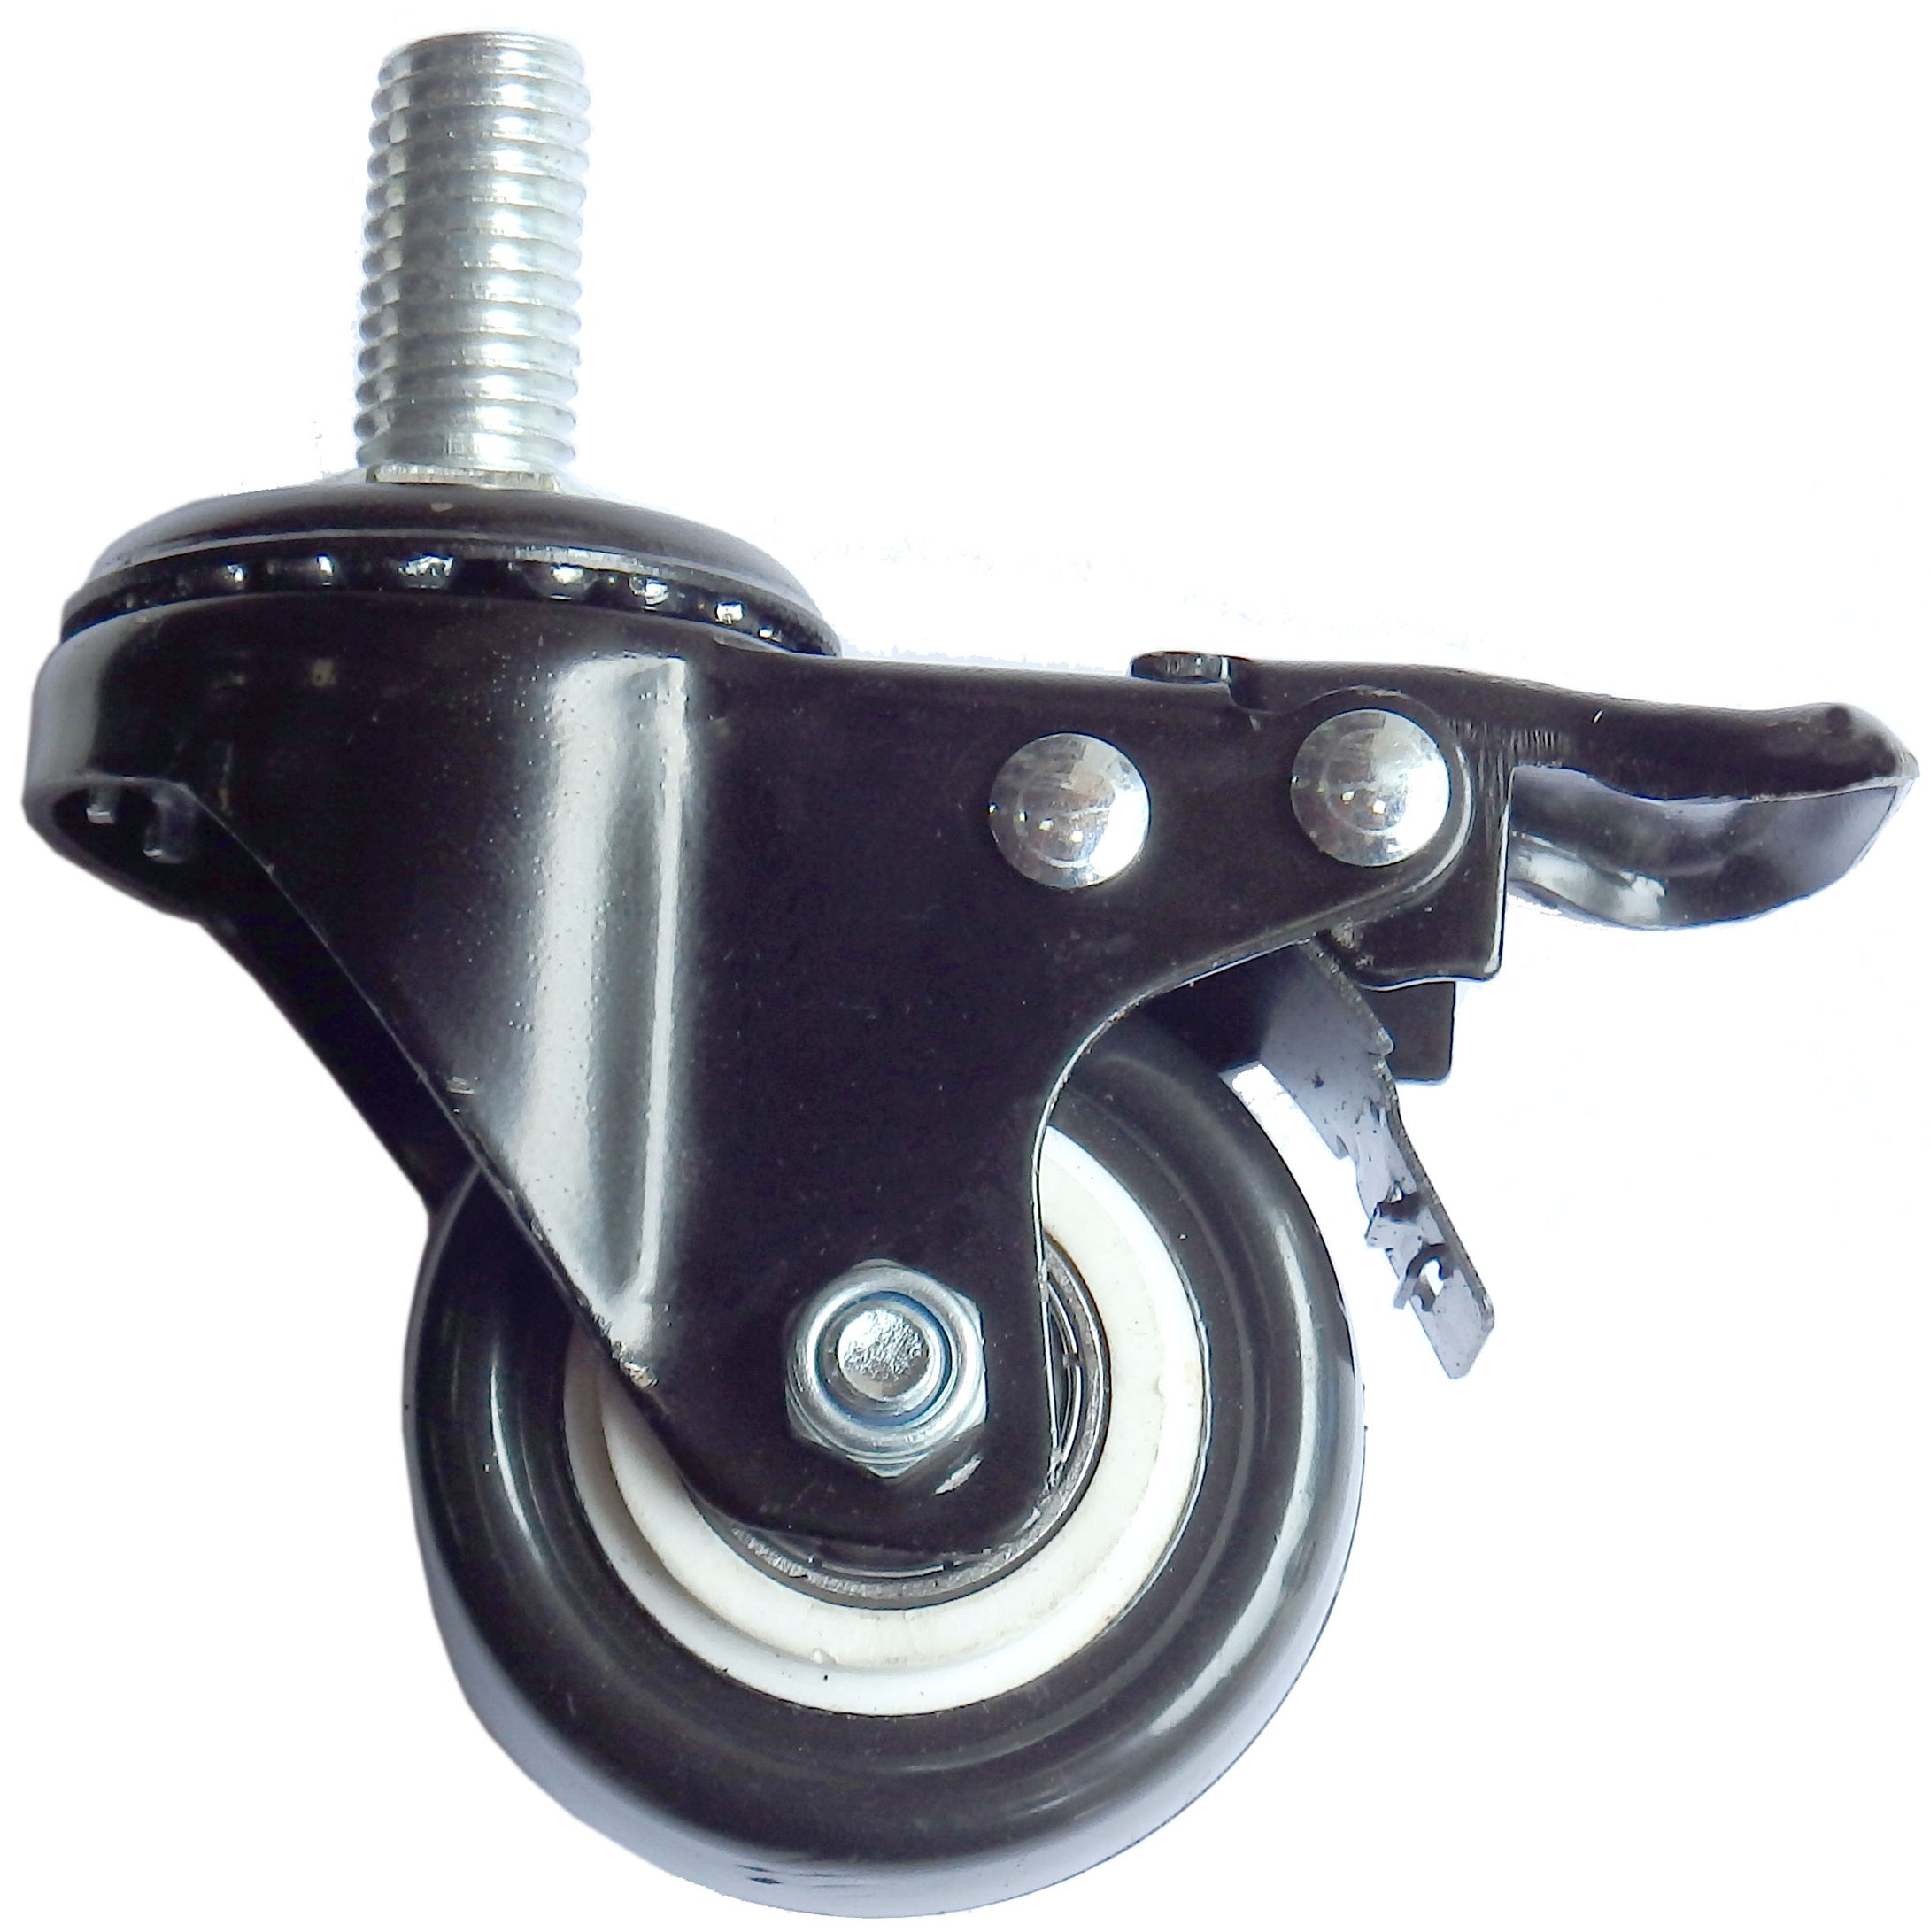 Caster Wheels for Industrial Sewing Machine Stand